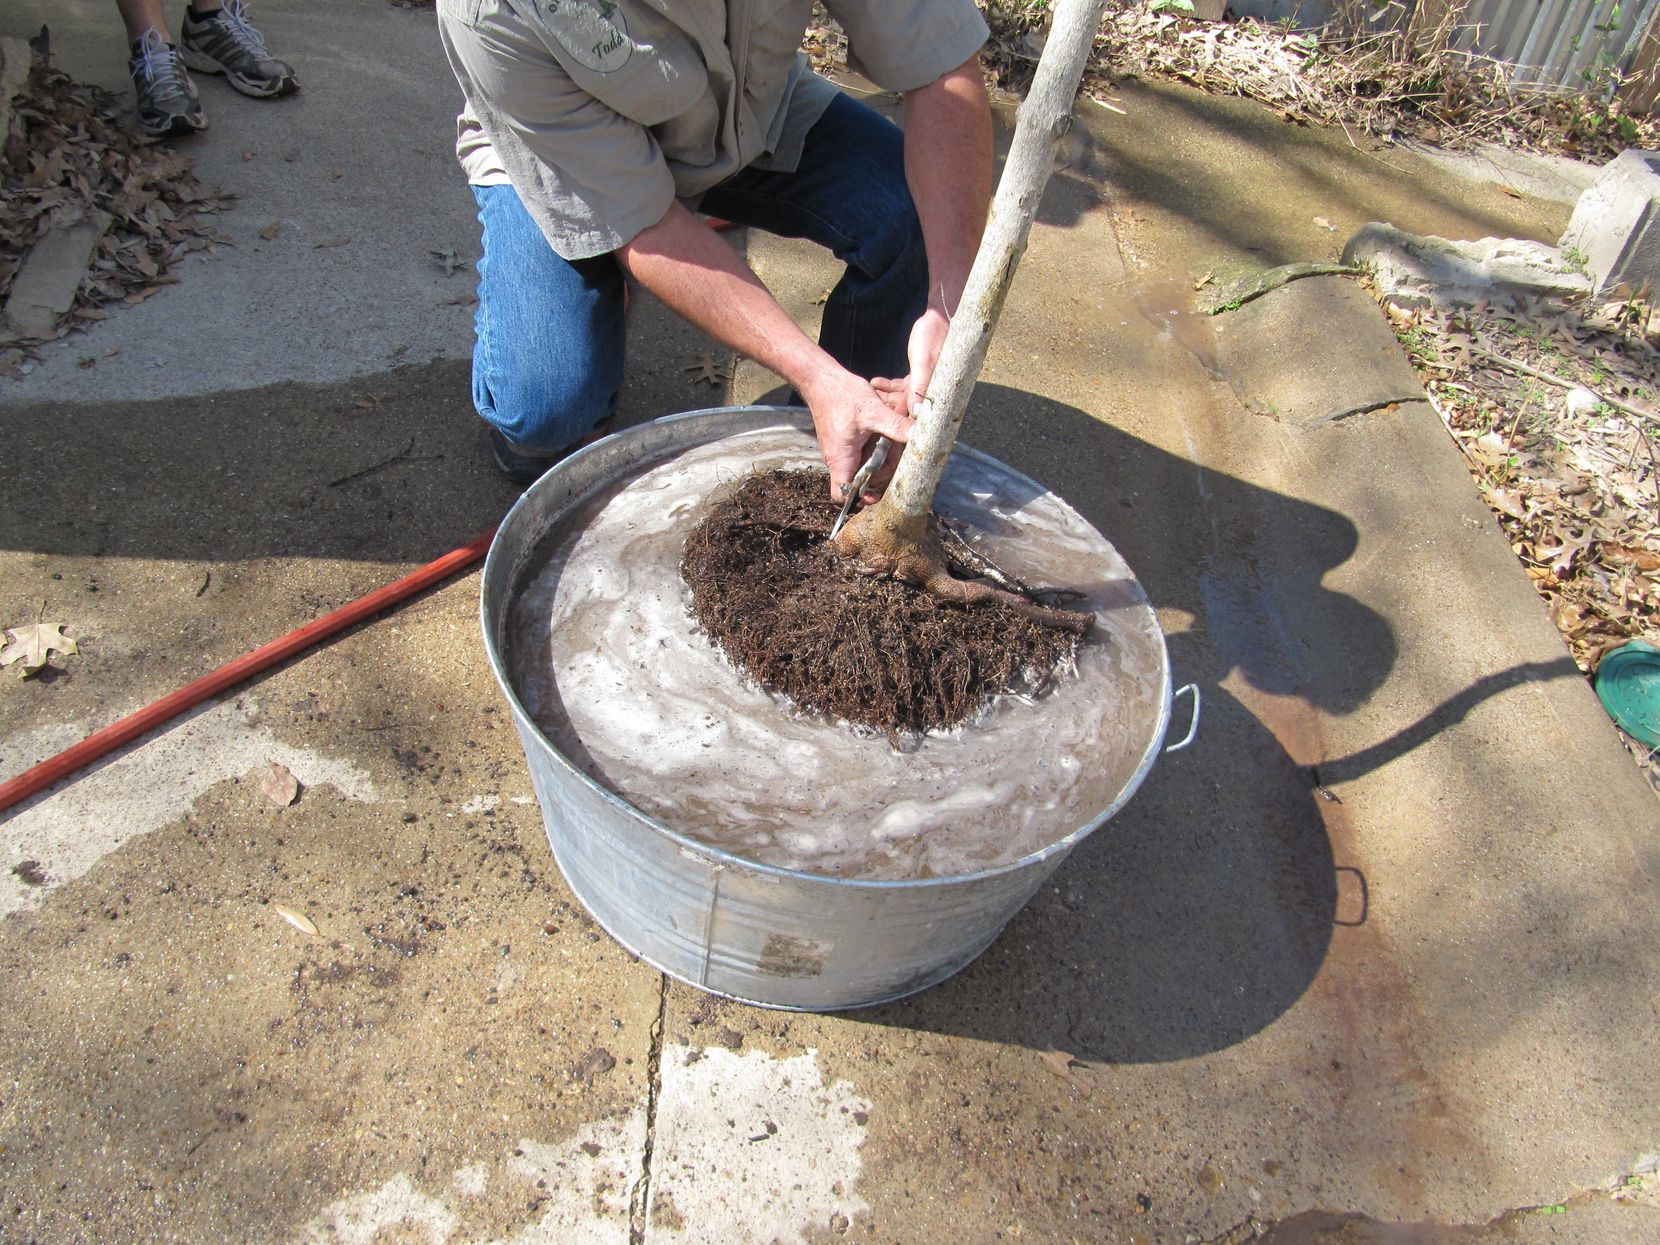 Before planting, soak root balls in water until they are thoroughly saturated.